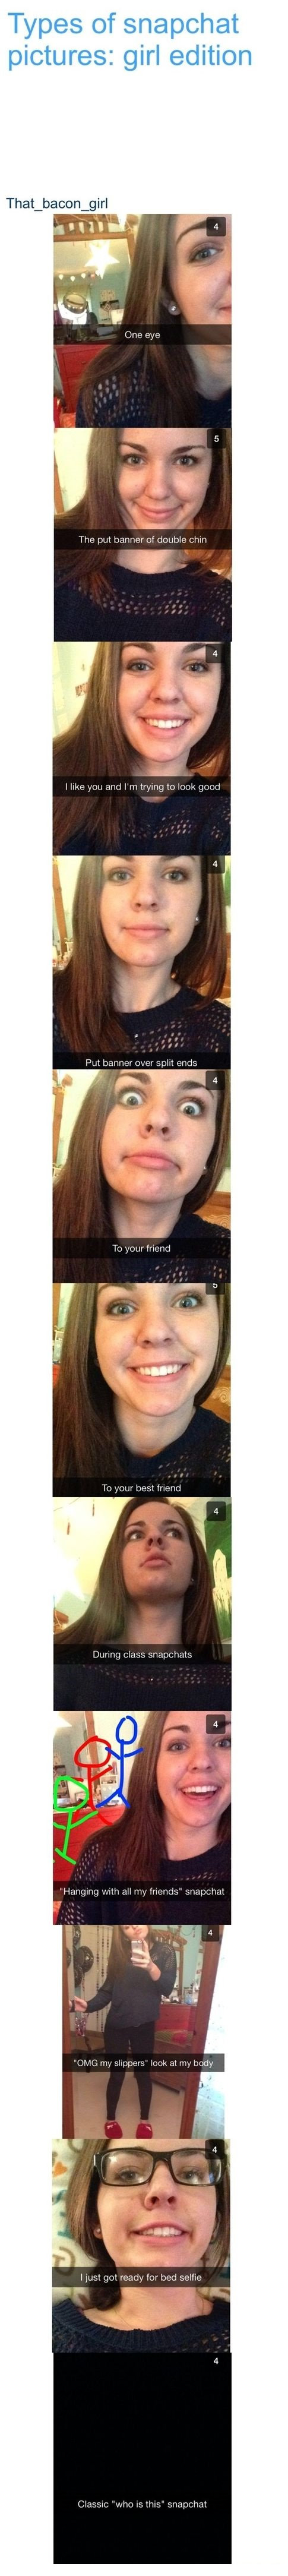 funny-picture-snapchats-girls